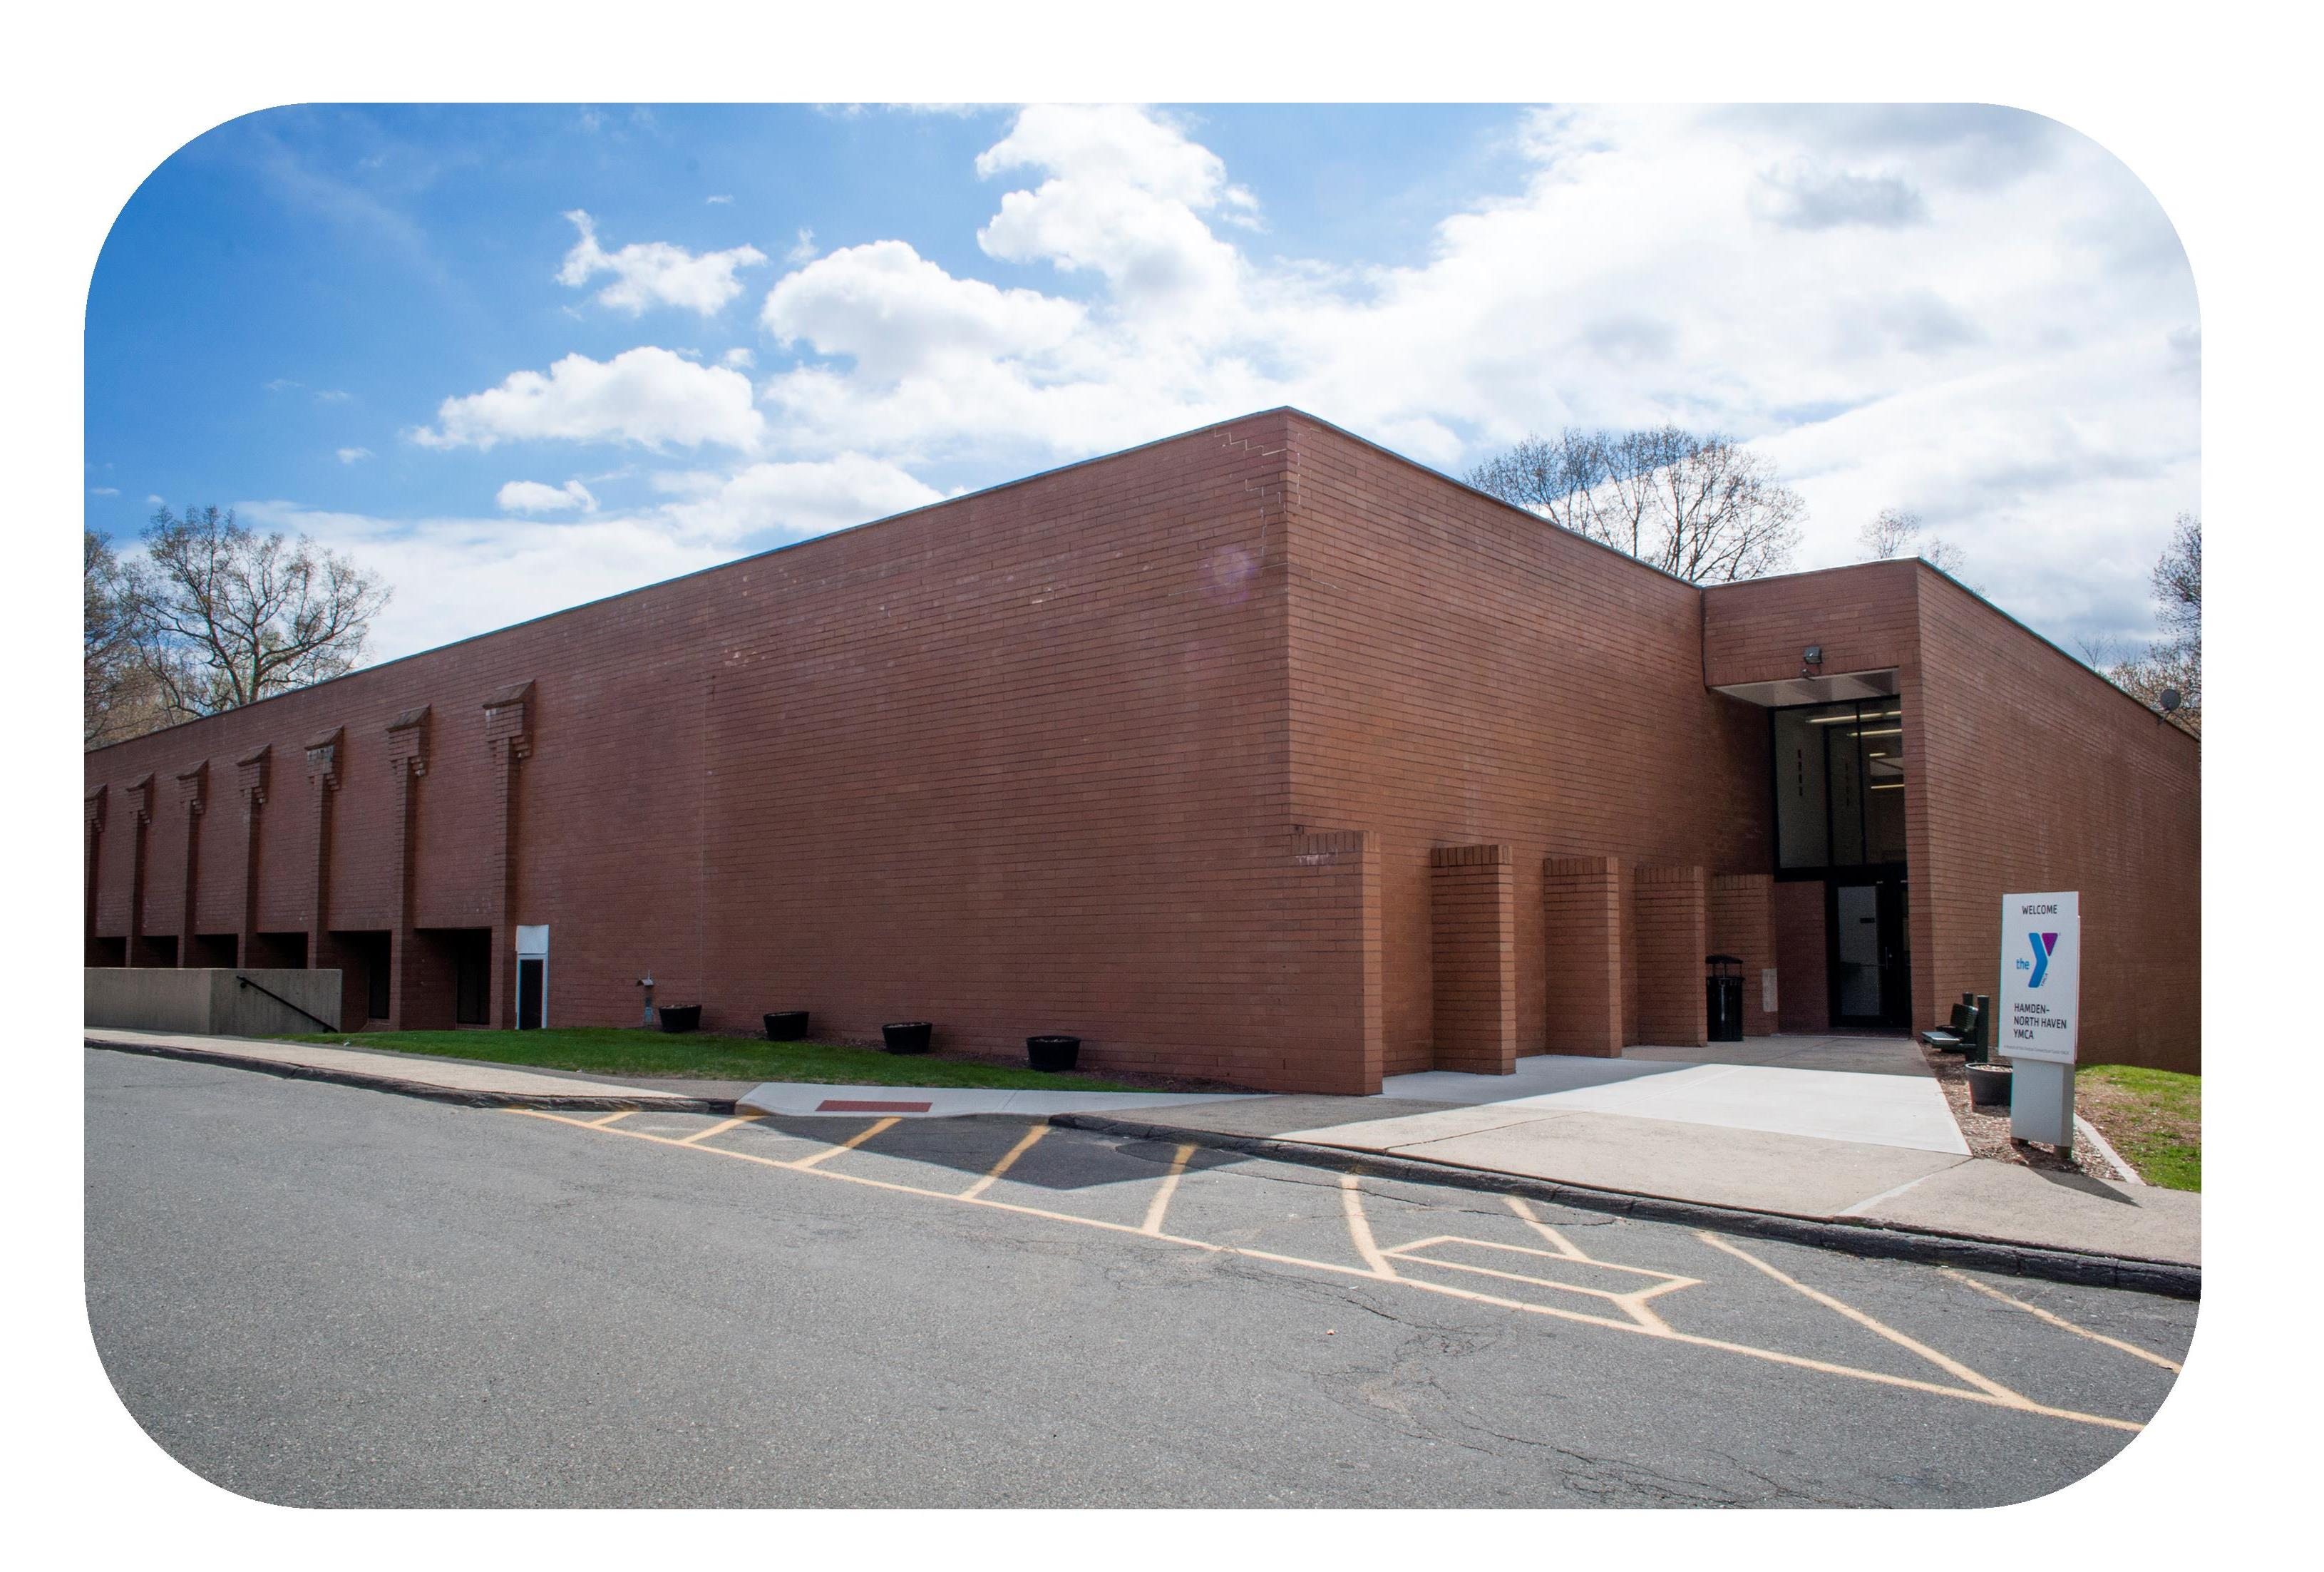 Hamden/North Haven YMCA | Central Connecticut Coast YMCA